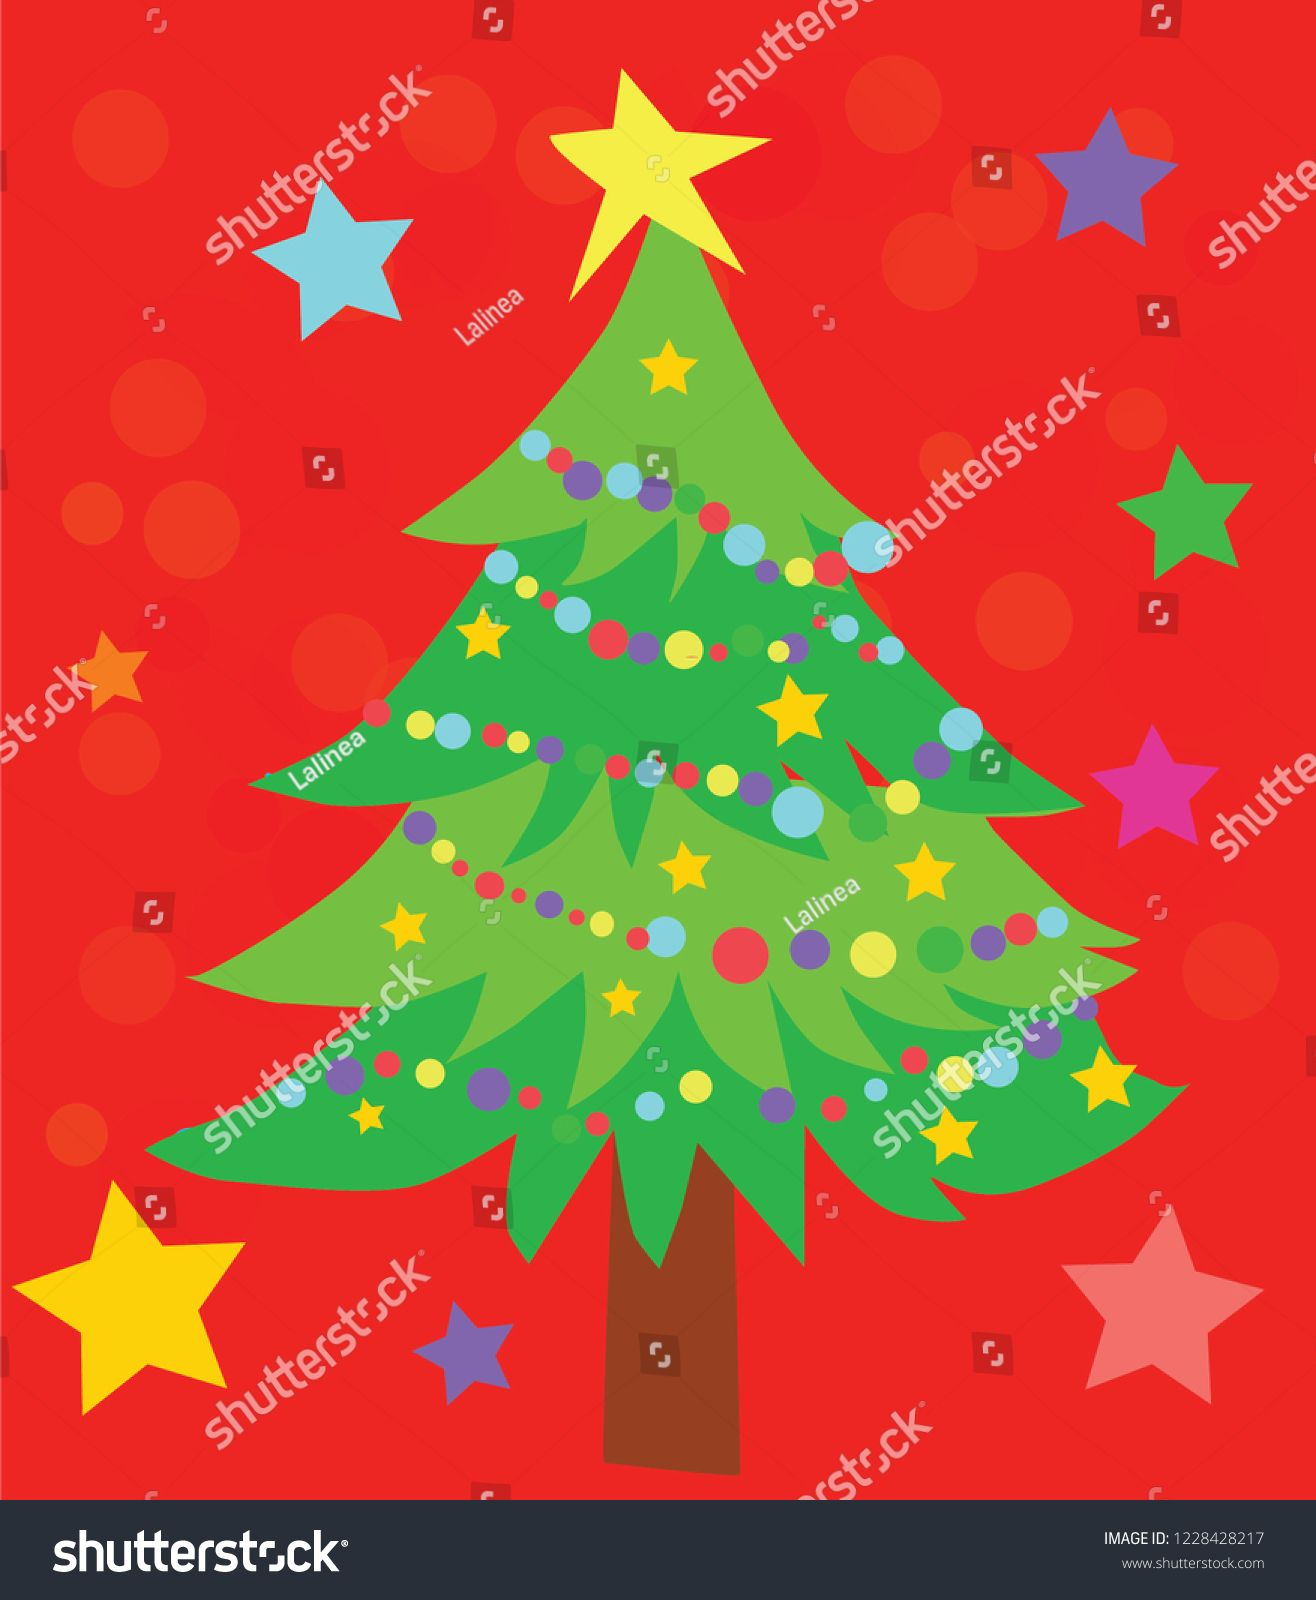 Vector illustration of cartoon christmas tree red background